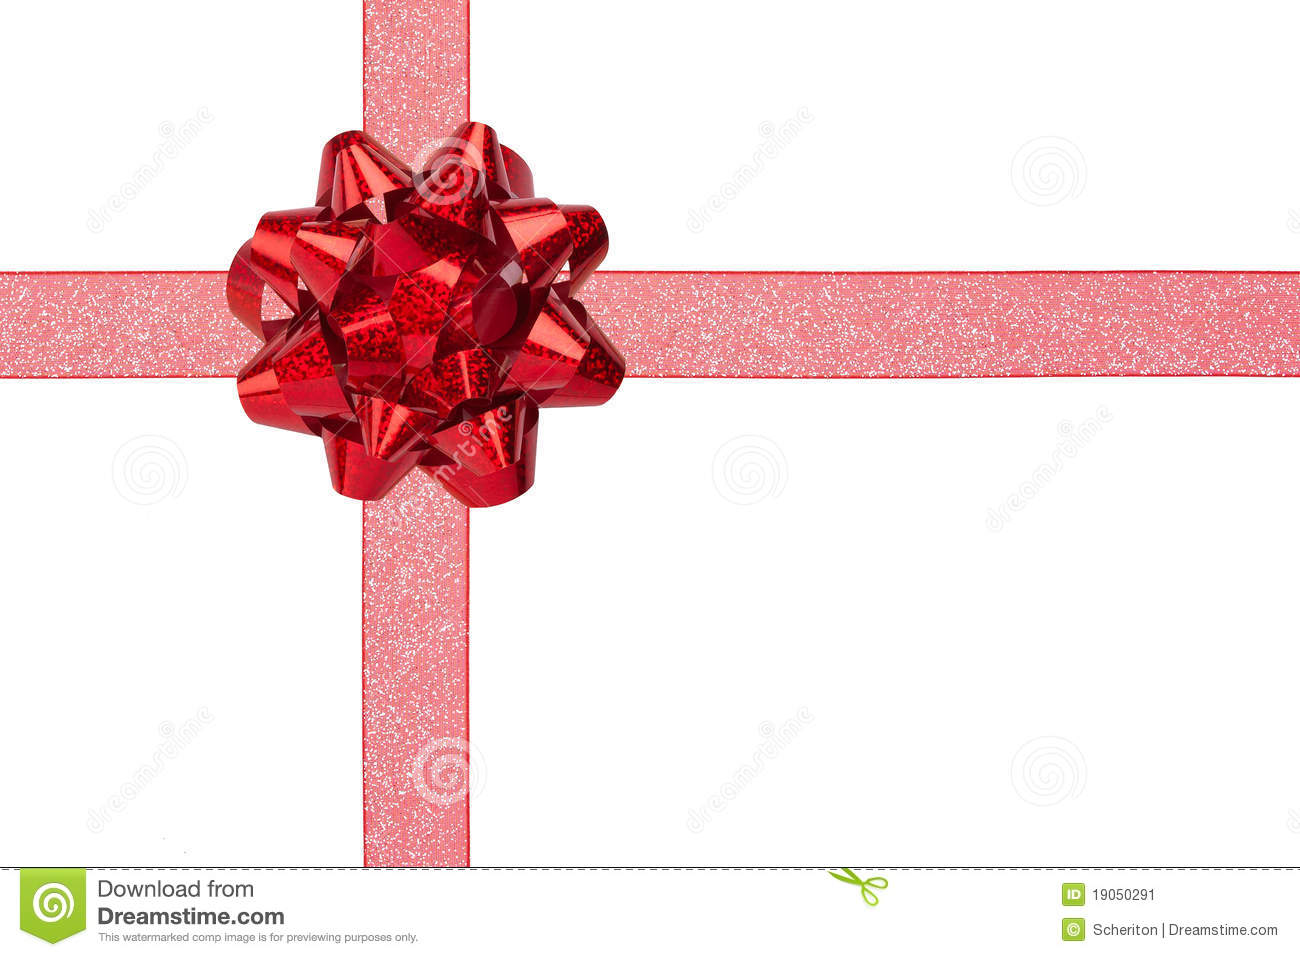 Gift wrap with red sparkly ribbon and bow stock image image of gift wrap with red sparkly ribbon and bow negle